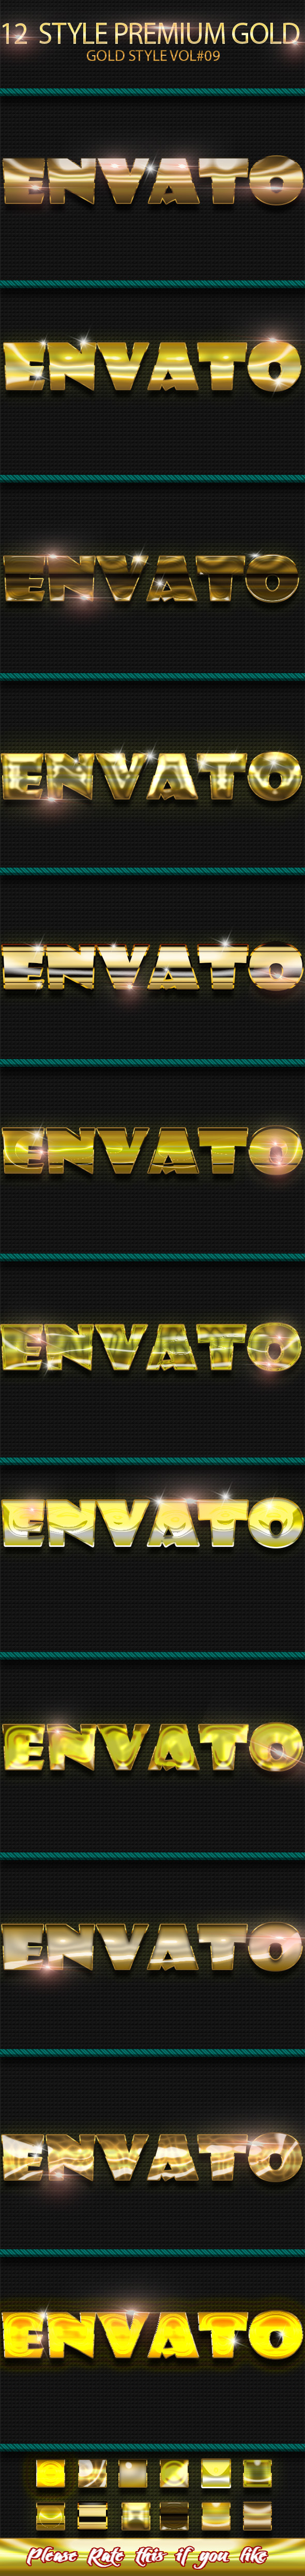 12 Photoshop GOLD Text Effect Styles Vol 9 - Text Effects Styles